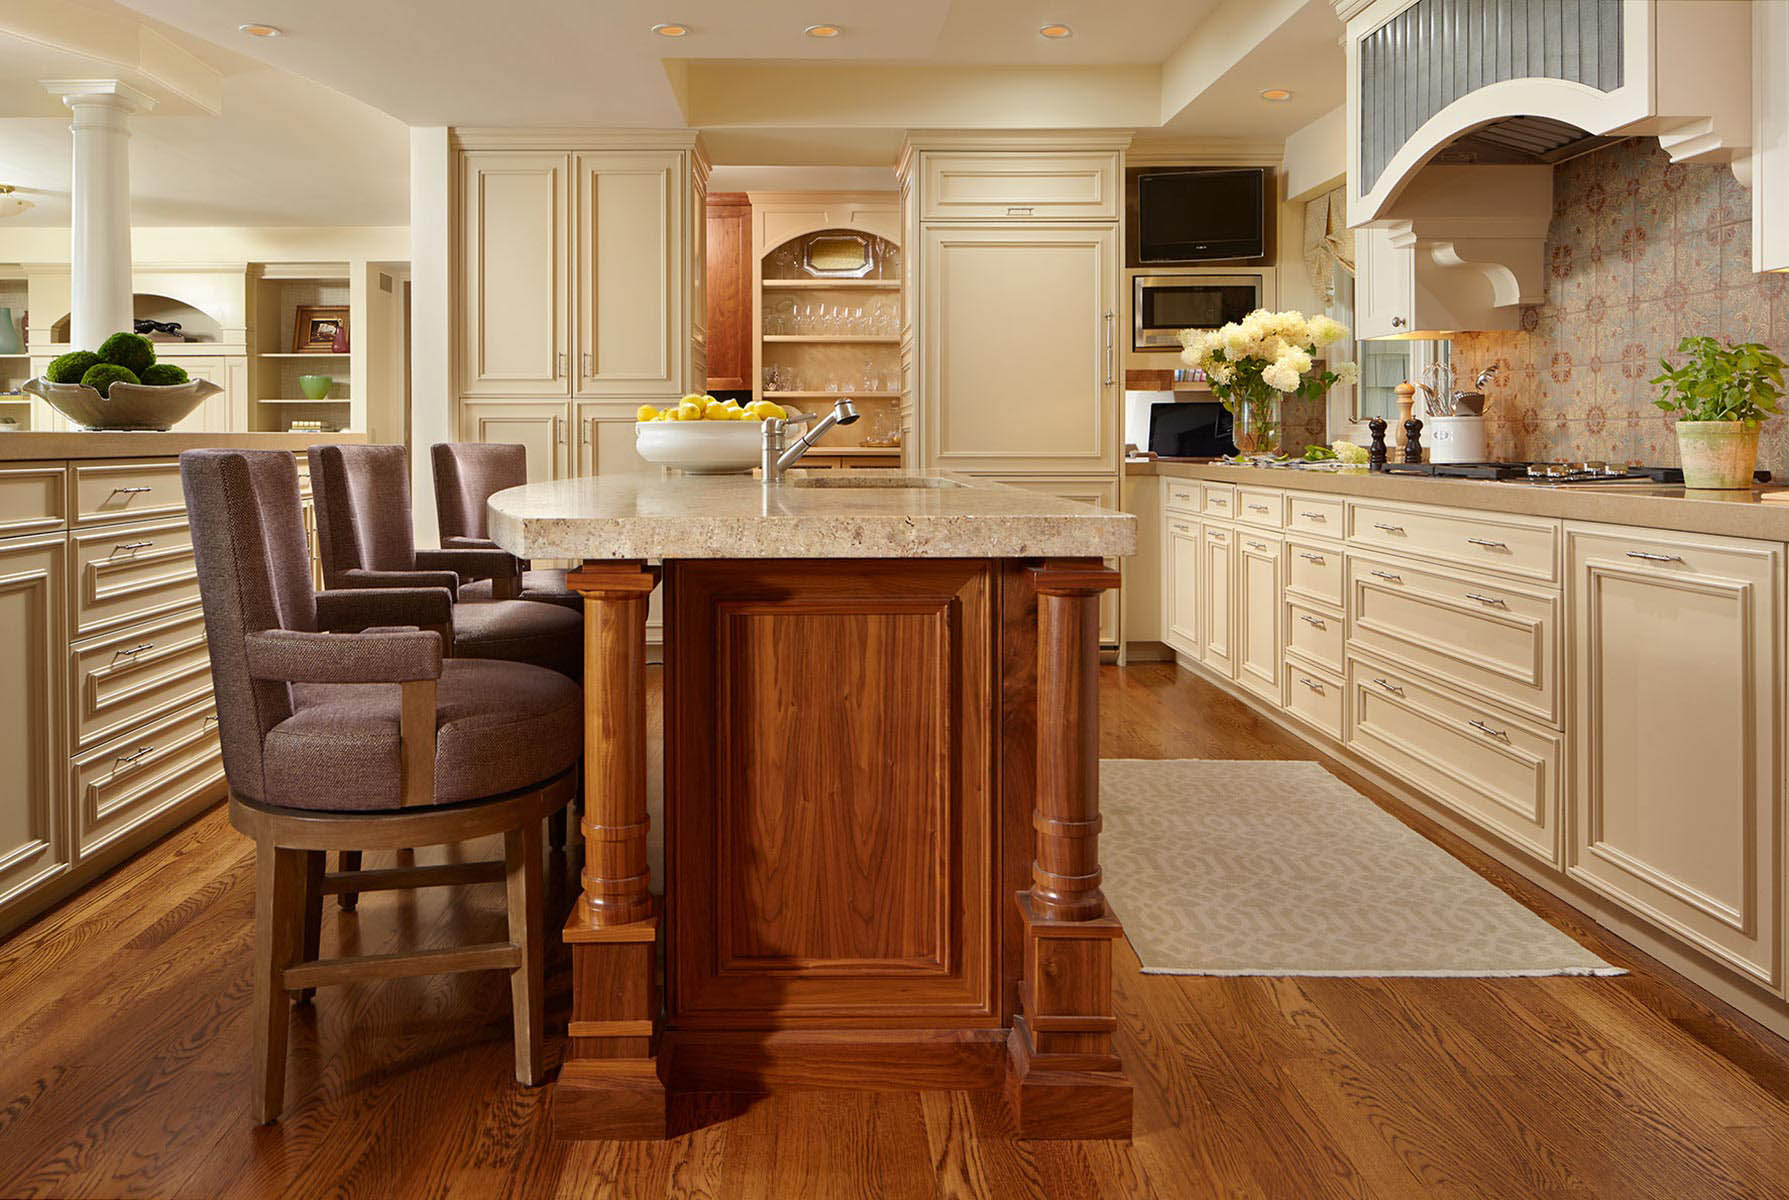 gourmet-luxury-kitchen-wayzata-interior-designer.jpg